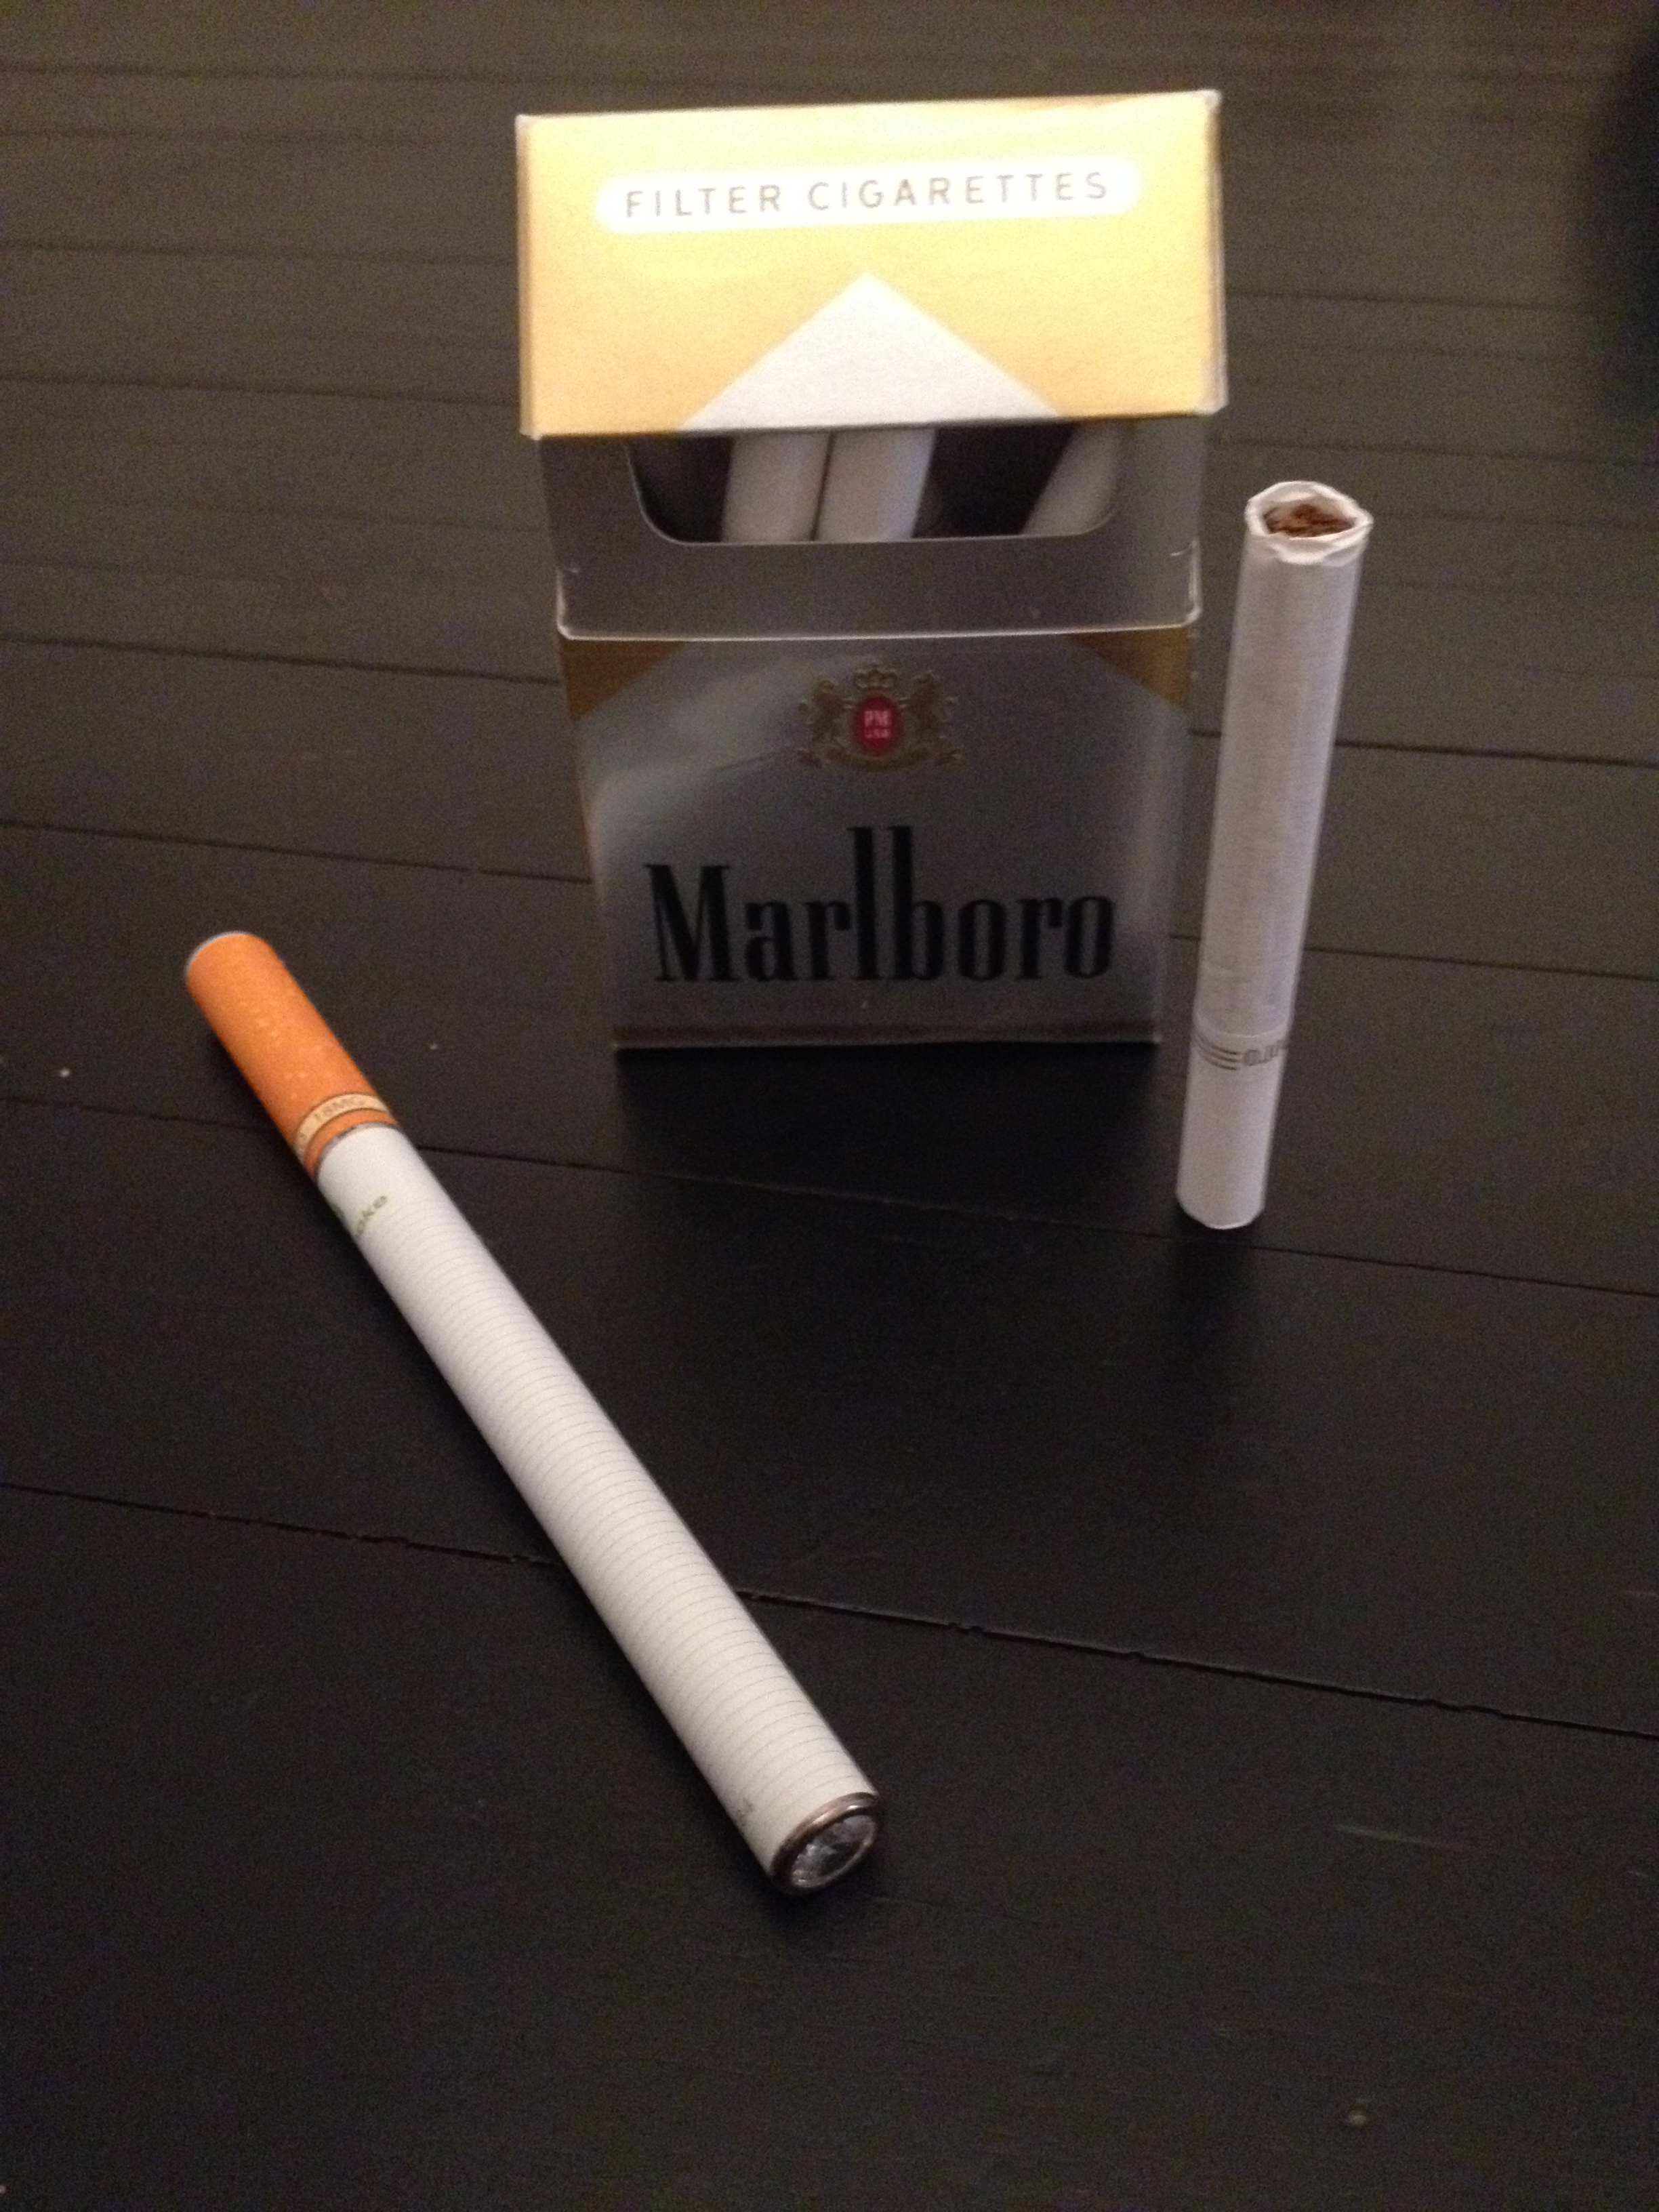 Blog: With E-Cigarettes, FDA Regulation Likely to Rule the Day